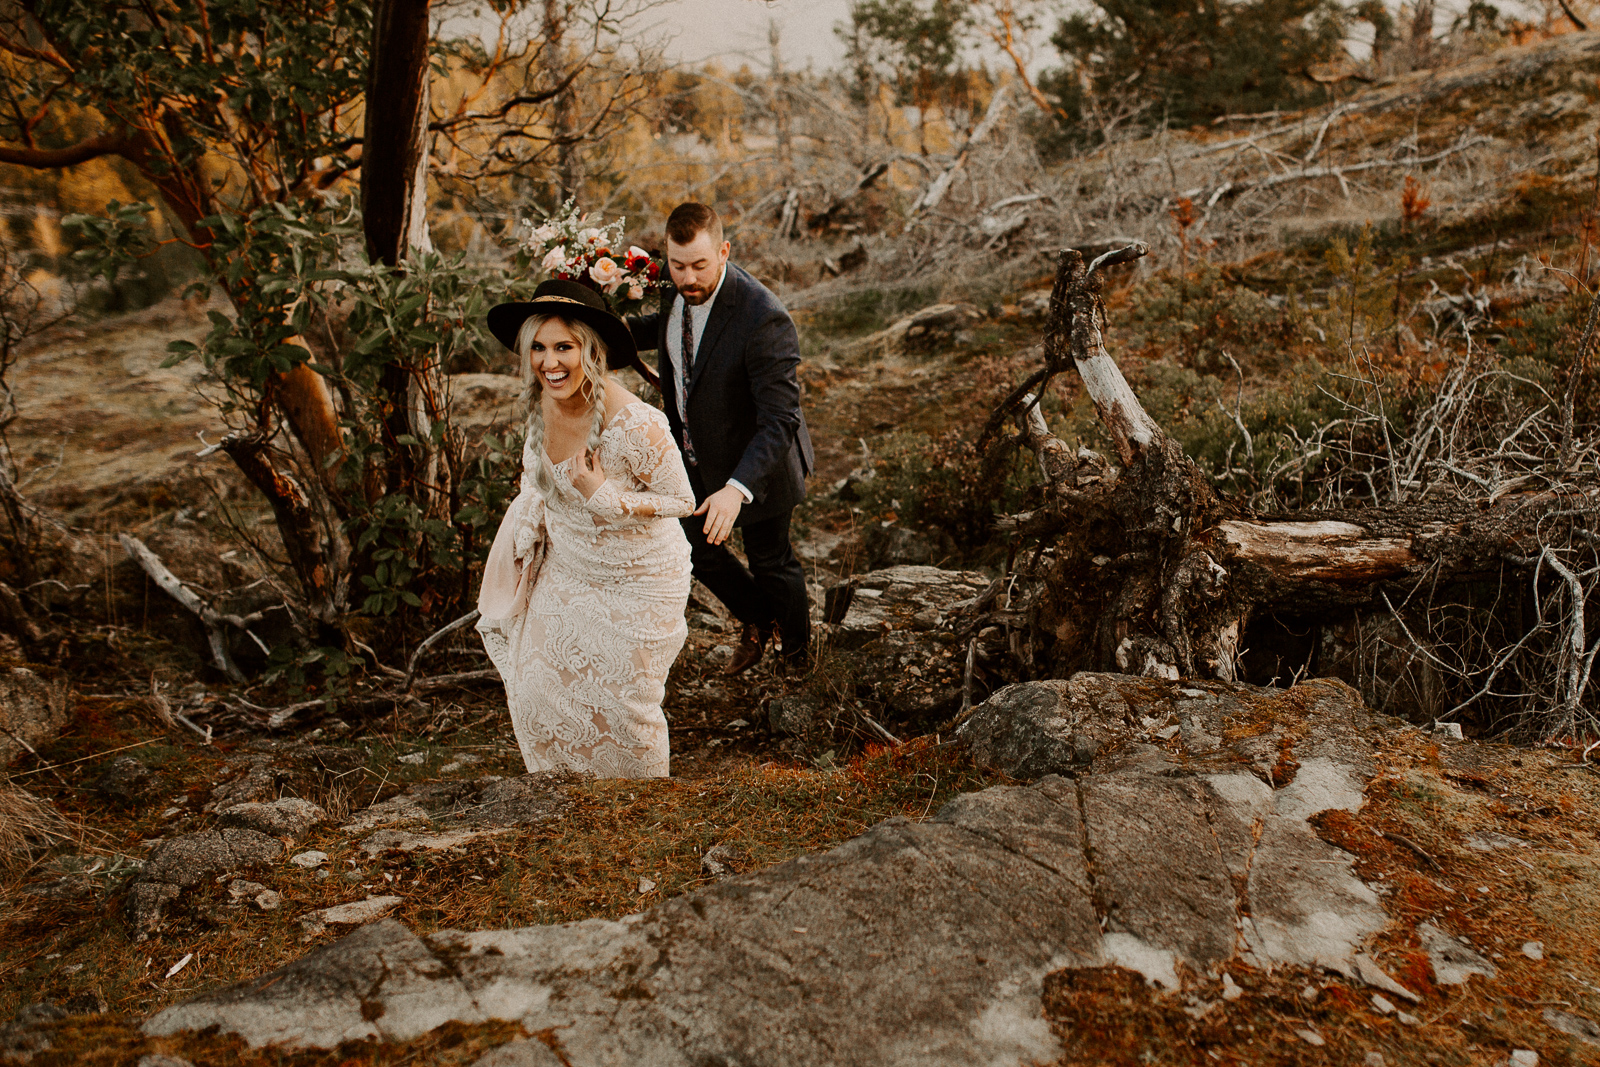 Luke Lambertson Photo_BritishColumbia_Canada_AdventurousCouple_Elopement_IMG-8329.jpg